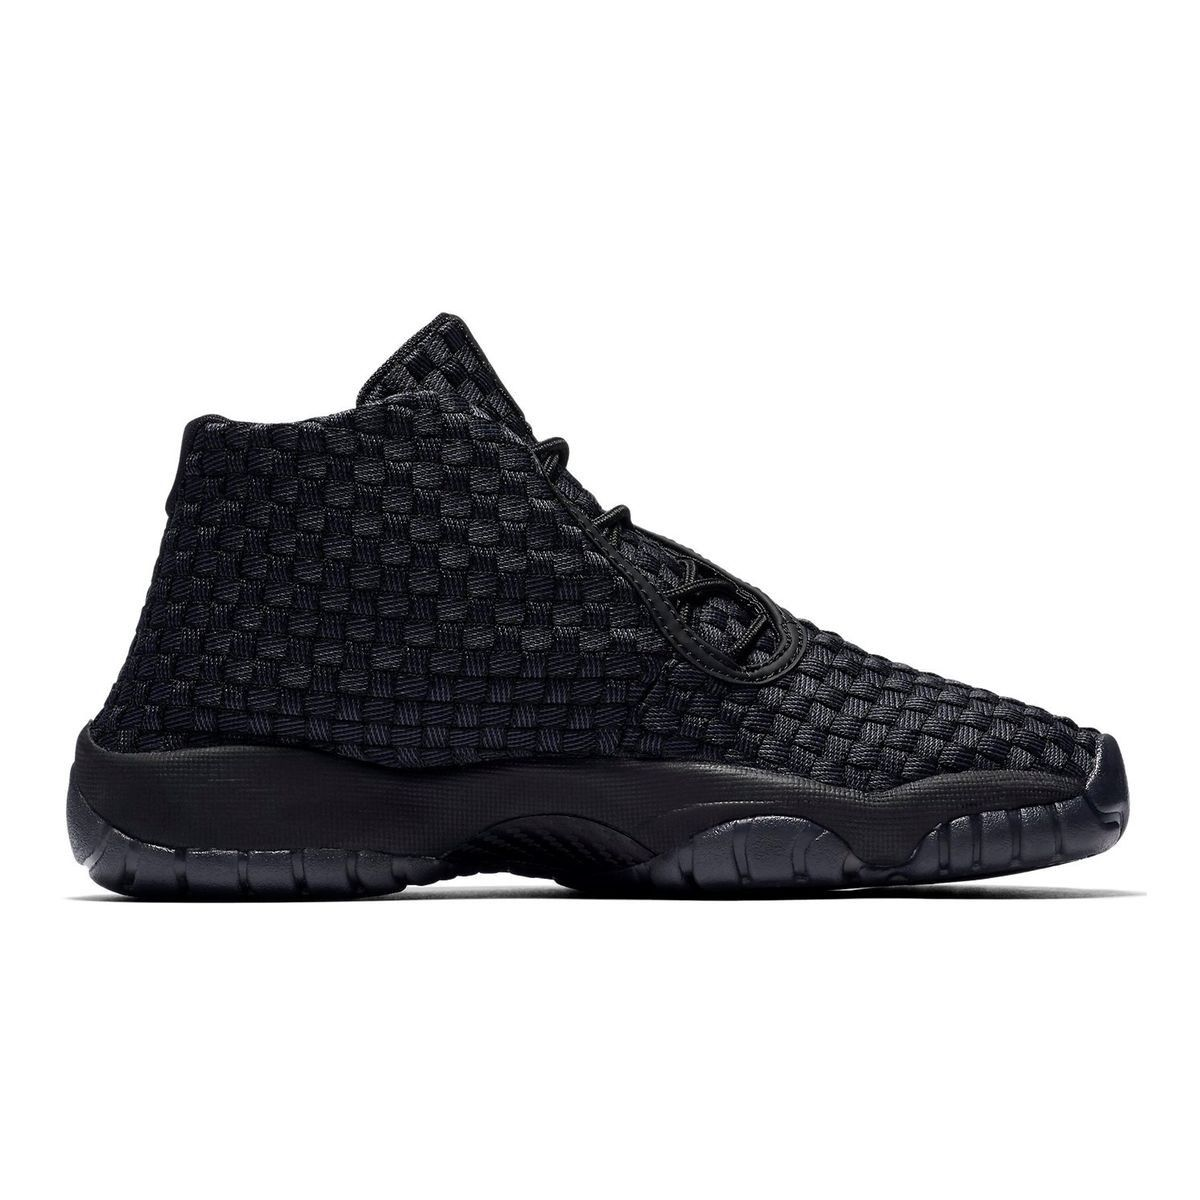 bas prix 2da3d 91b81 Basket Air Jordan Future Junior - Taille : 36;37;38;39;40 ...